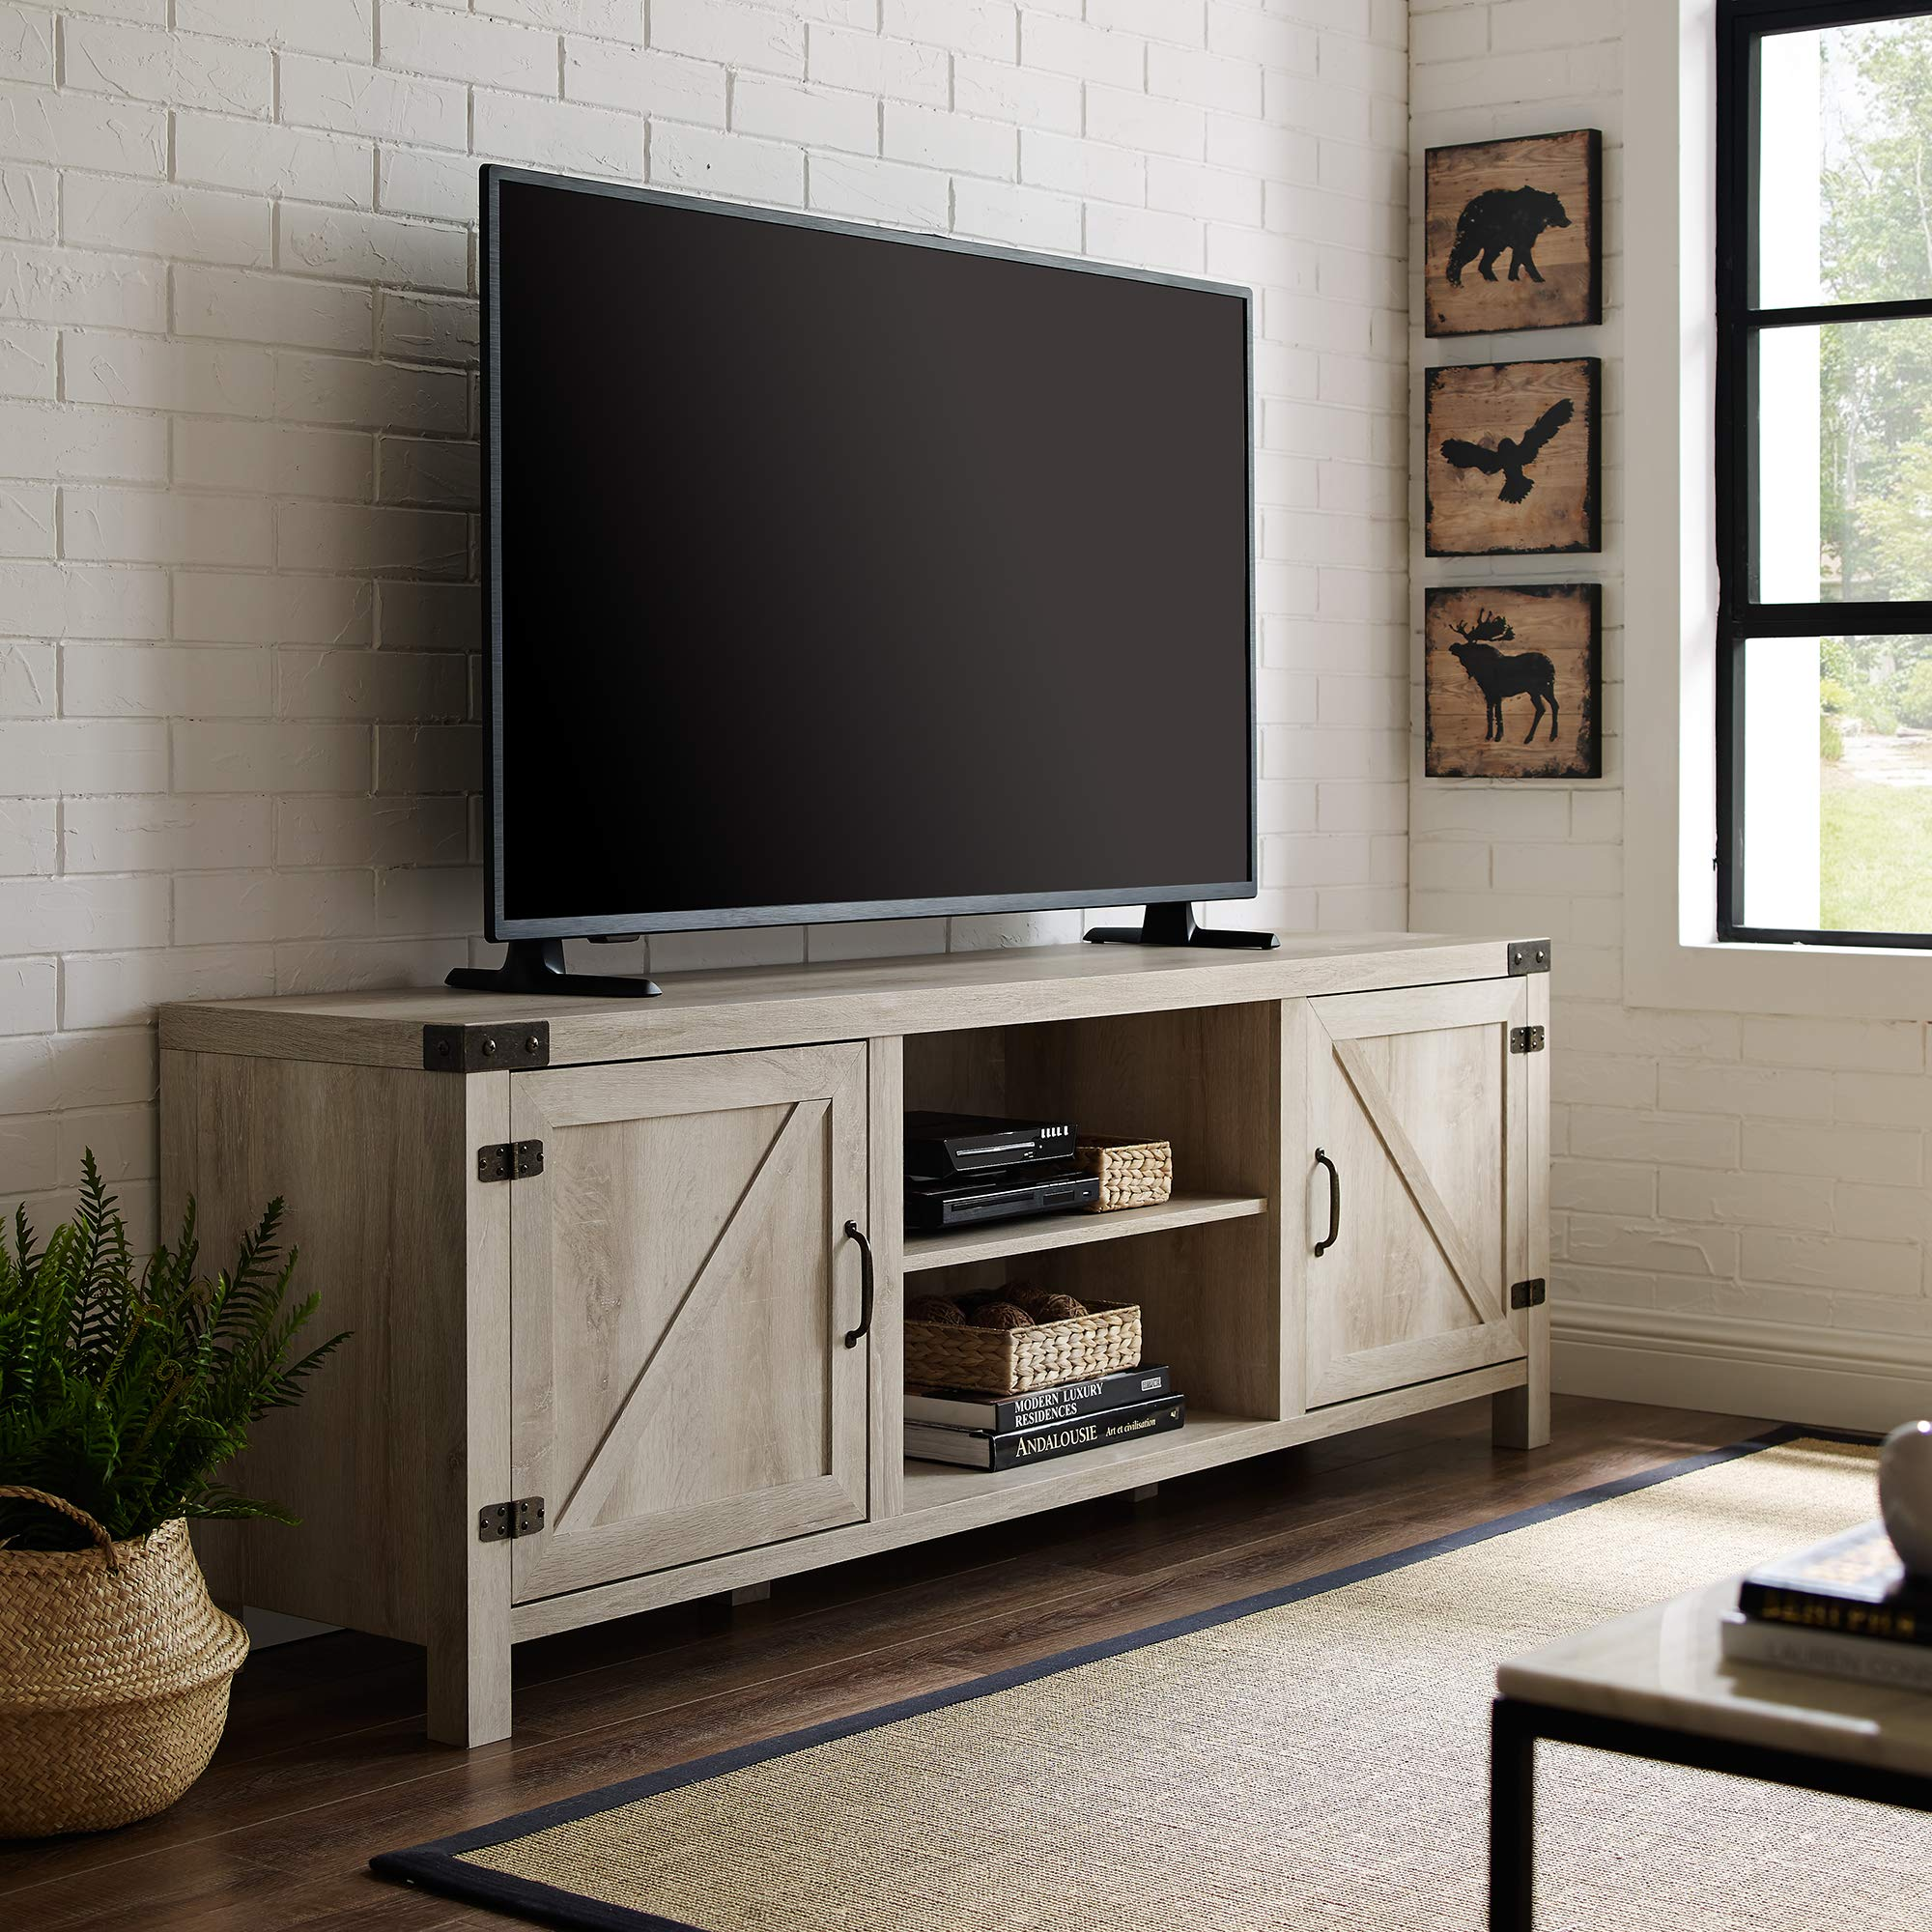 Walker Edison Georgetown Modern Farmhouse Double Barn Door TV Stand for TVs up to 80 Inches, 70 Inch, White Oak